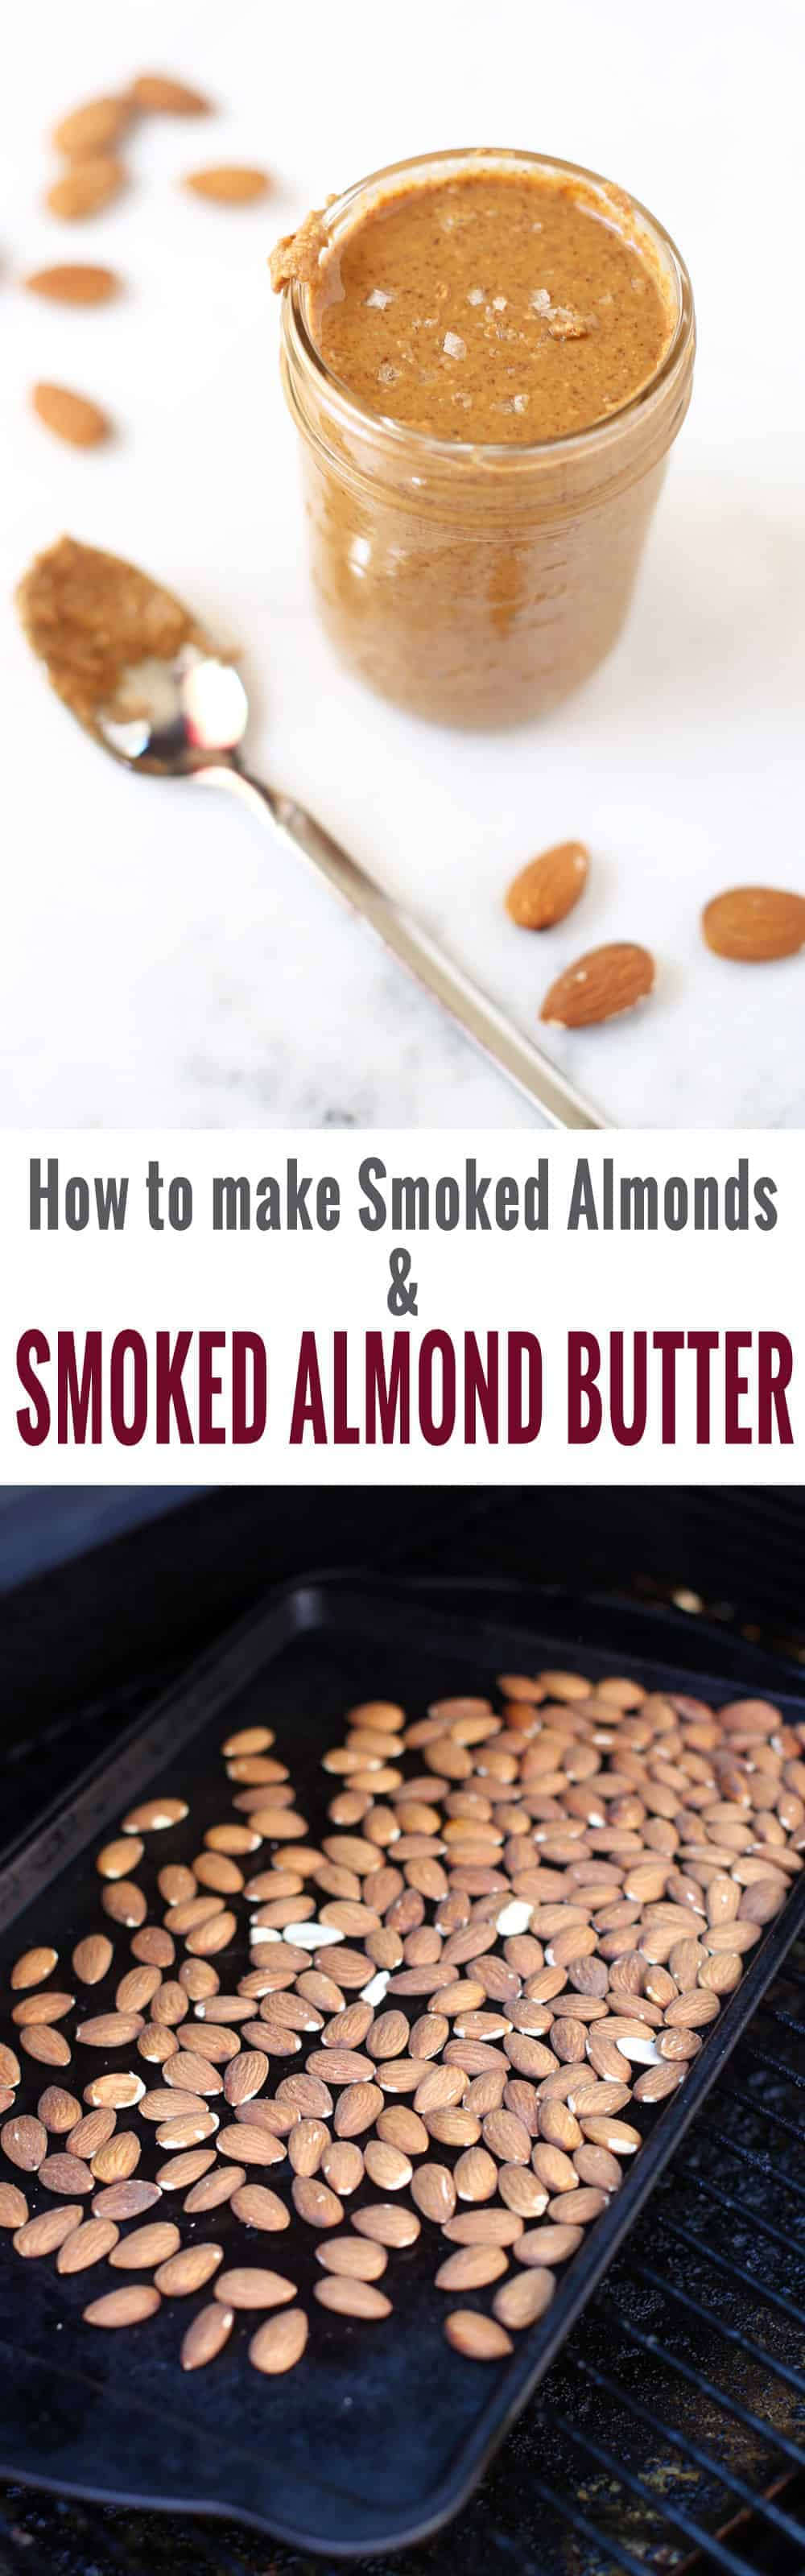 How to make Smoked Almonds and Smoked Almond Butter